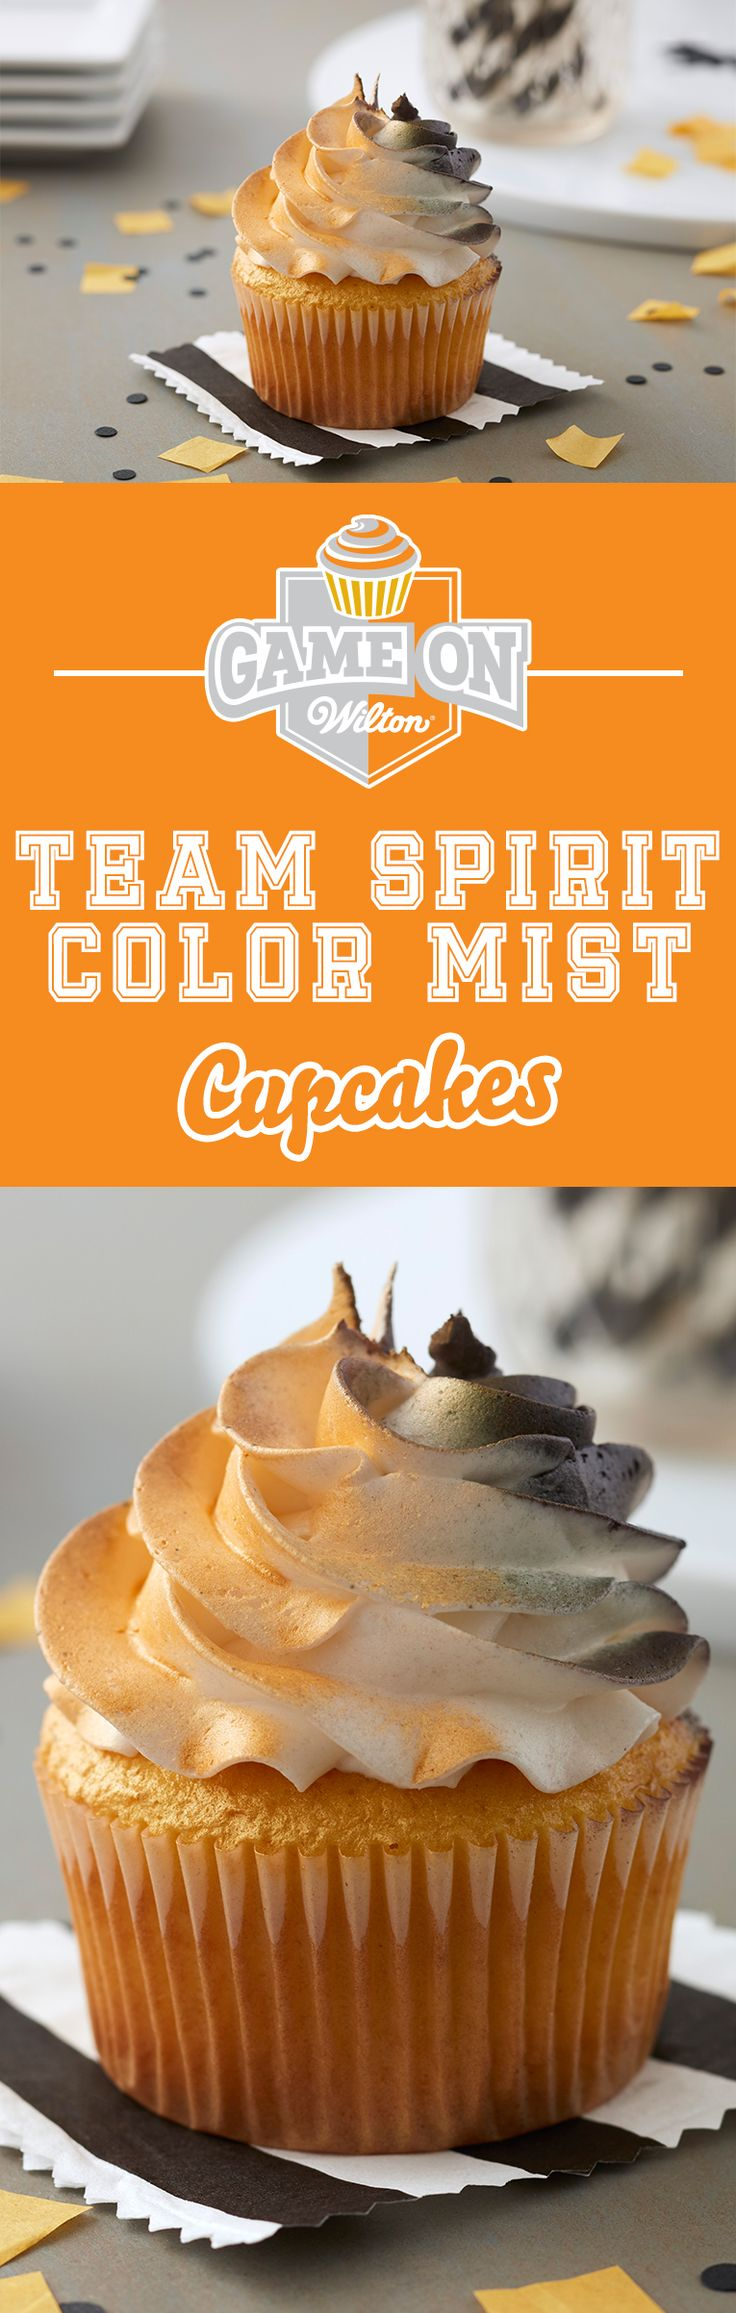 Show off your team spirit with these Team Spirit Cupcakes—made with fun Color Mist Food Coloring spray. With so many Color Mist colors available, it's easy to customize your favorite cupcakes in your favorite team colors! Bring cupcakes to your tailgate or football party or as snacks as you root for your favorite school team play!